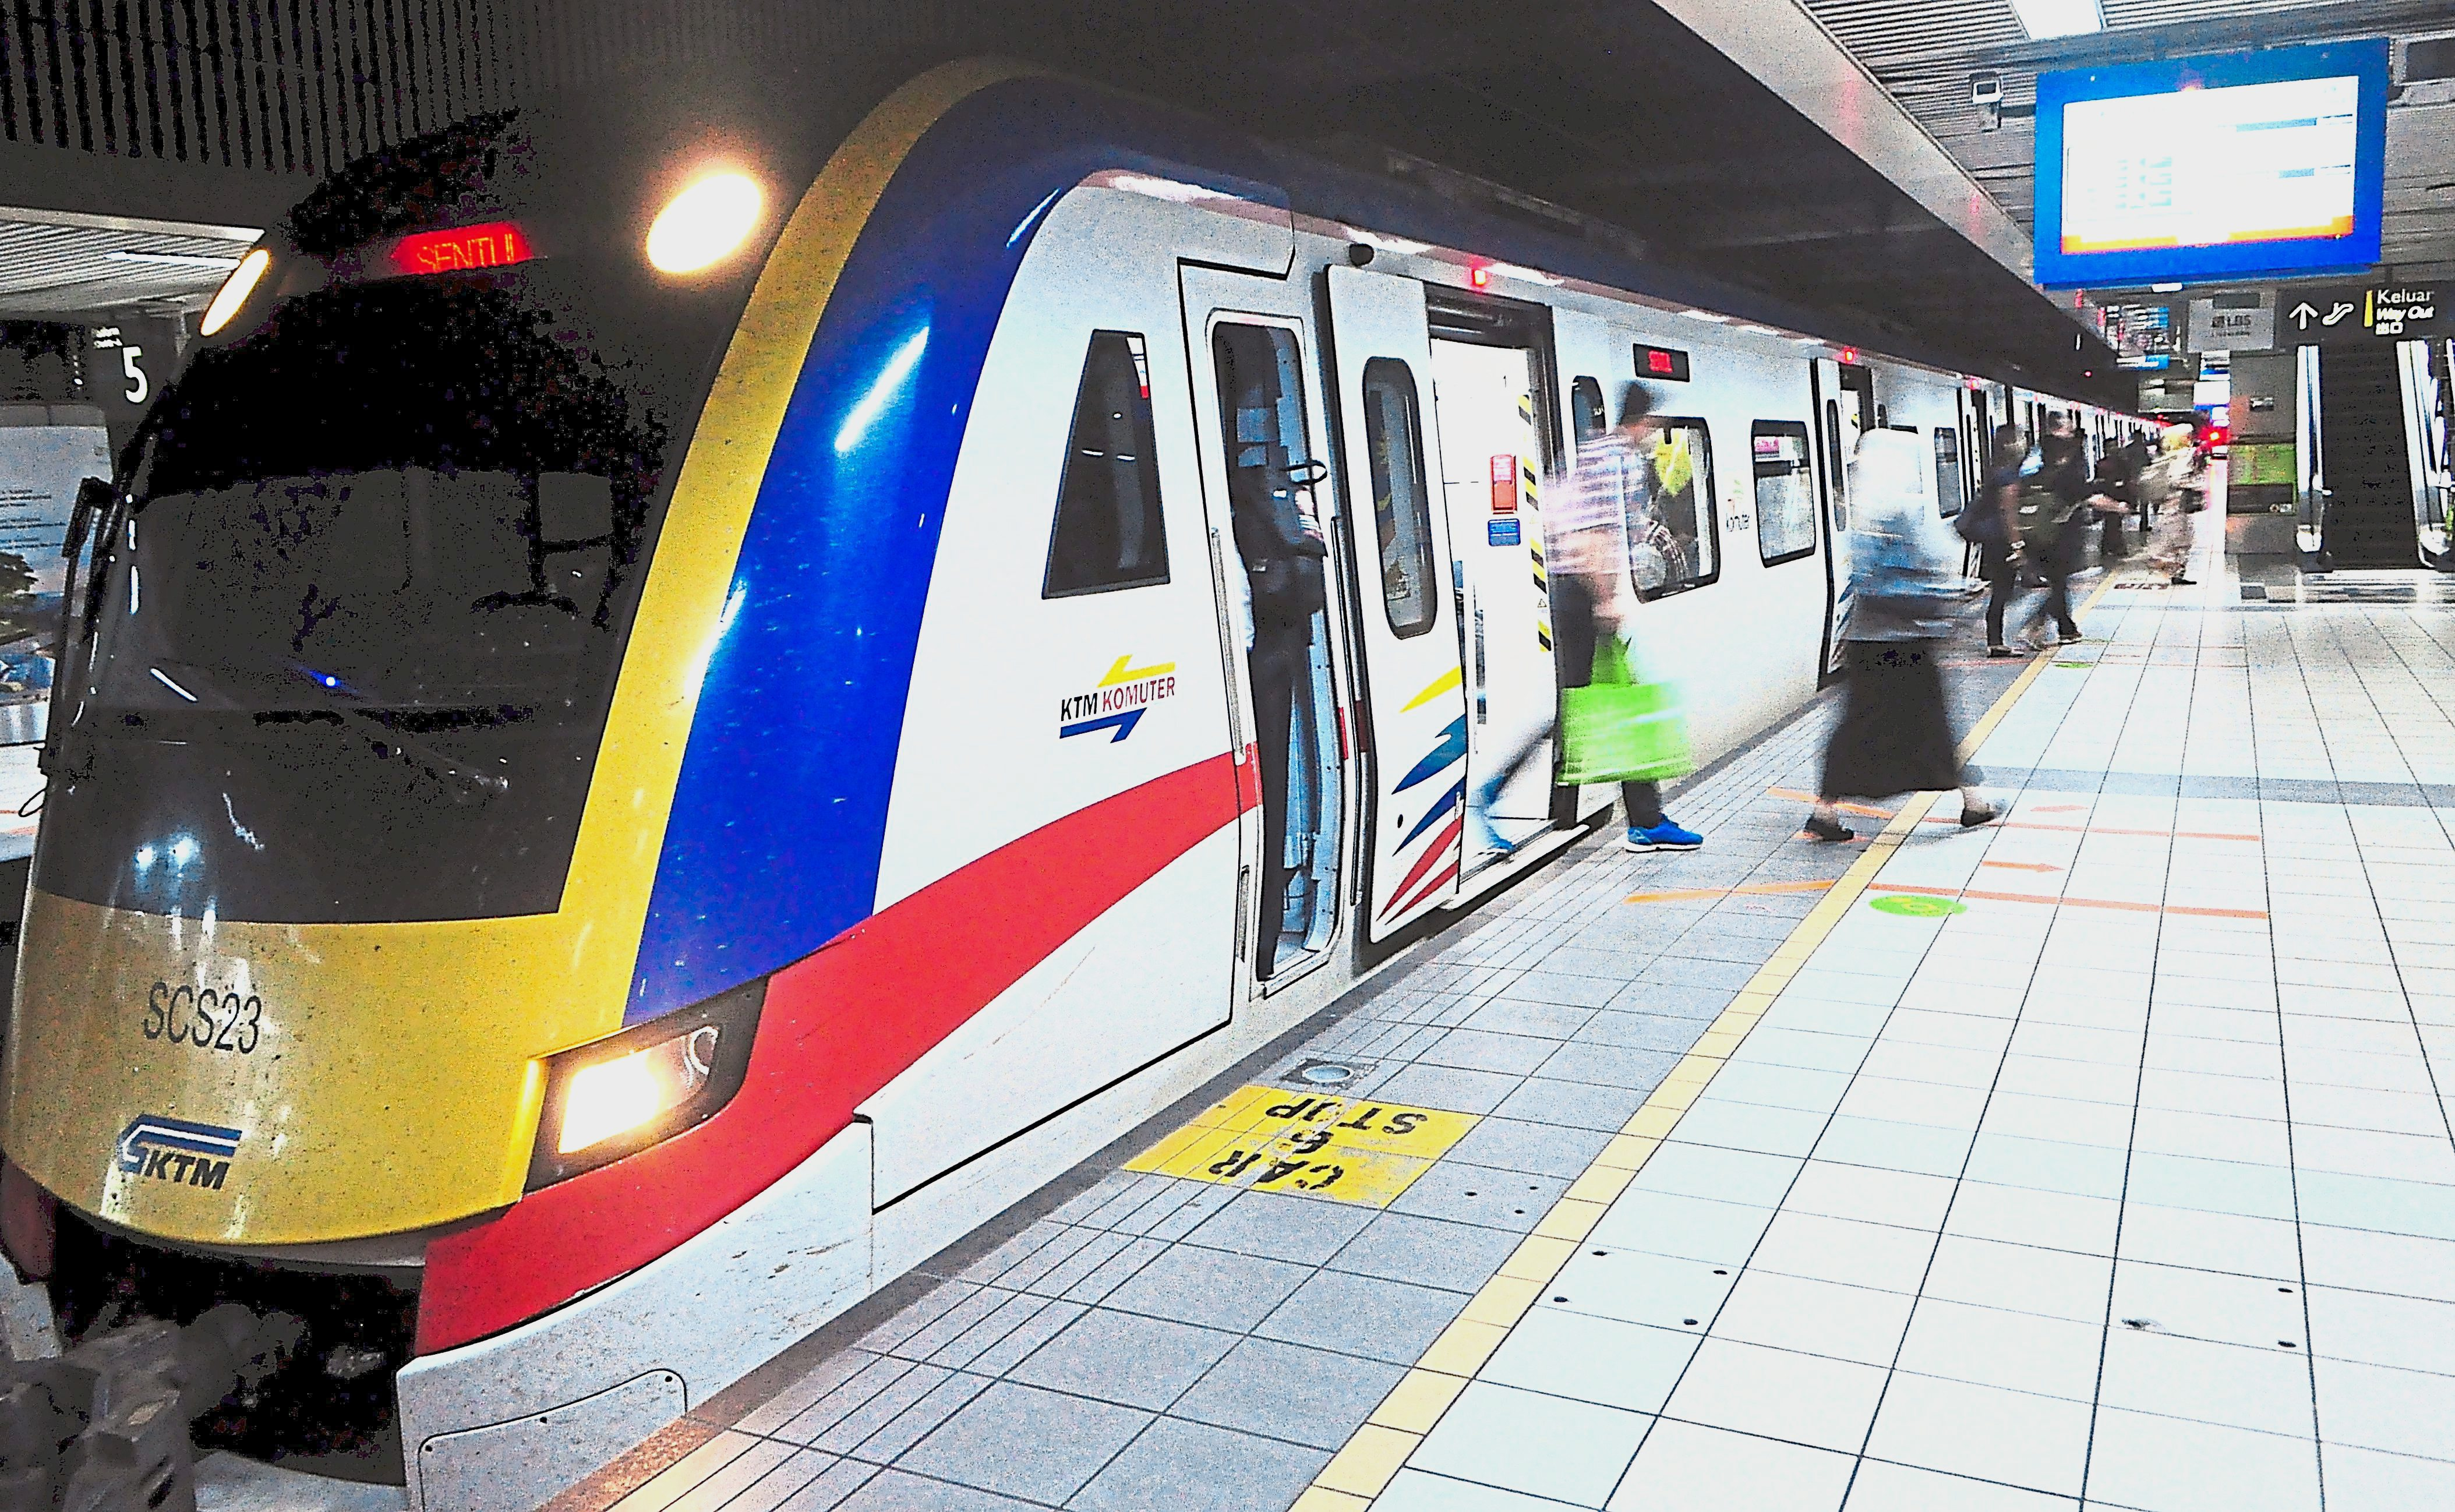 The Seremban-Nilai-KL Sentral-Sentul Komuter Express service is only available on weekdays. It does not run on weekends and public holidays.  u2014 Photos: GRACE CHEN/The Star